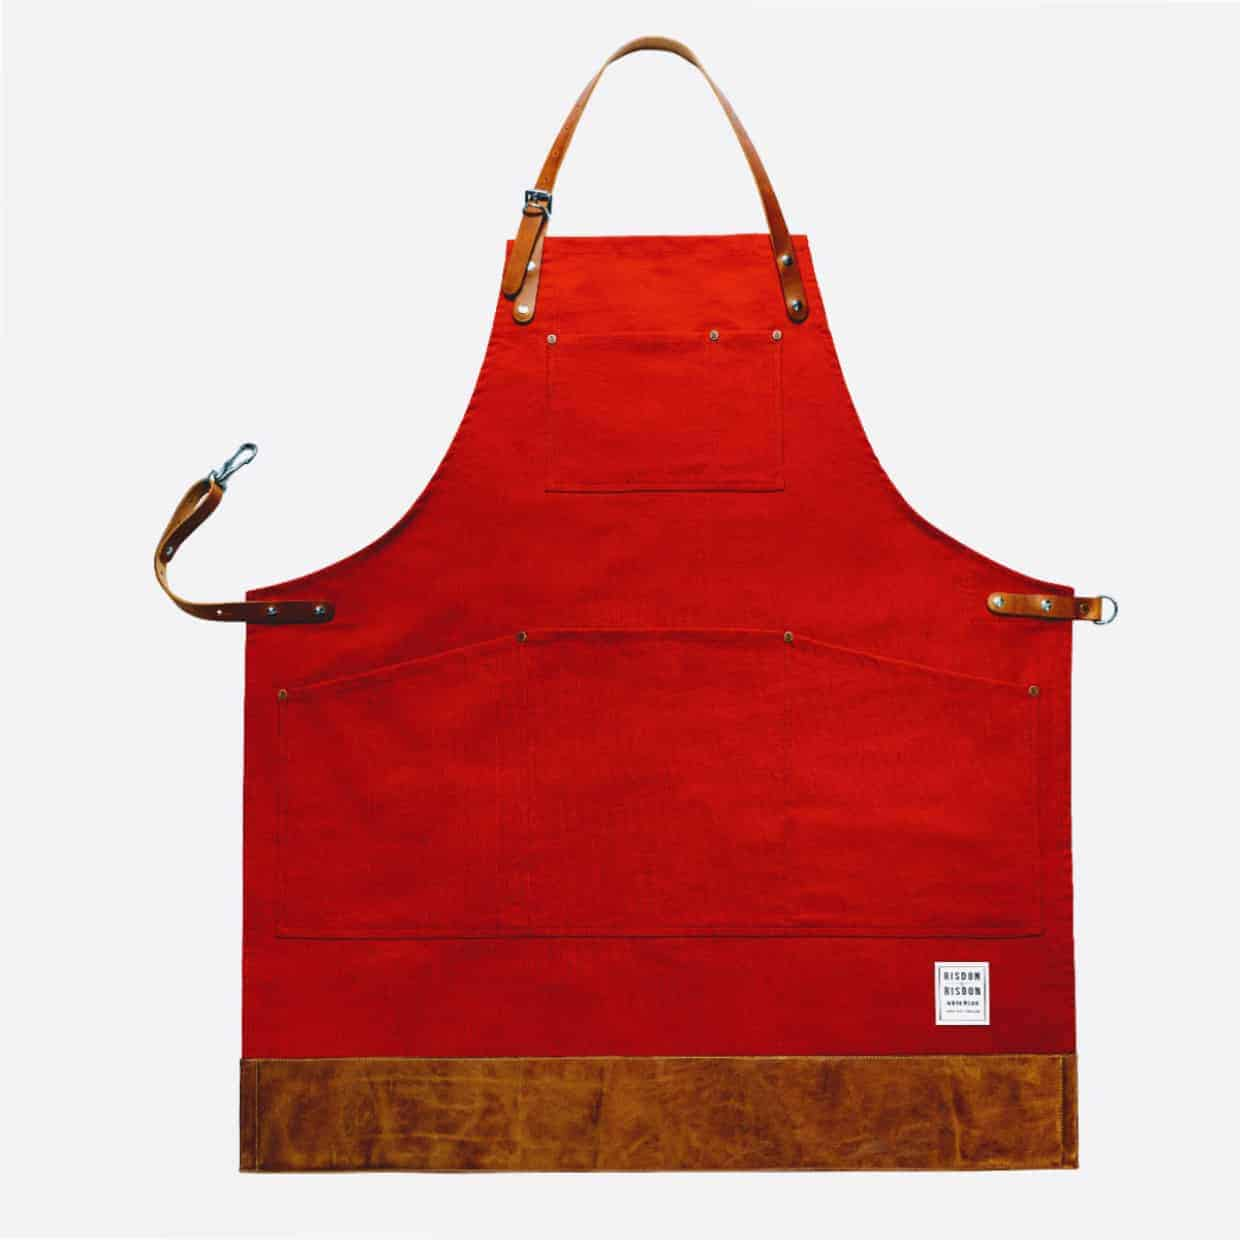 Risdon red 1240x1240 - Risdon & Risdon Interview - The making of handcrafted aprons.